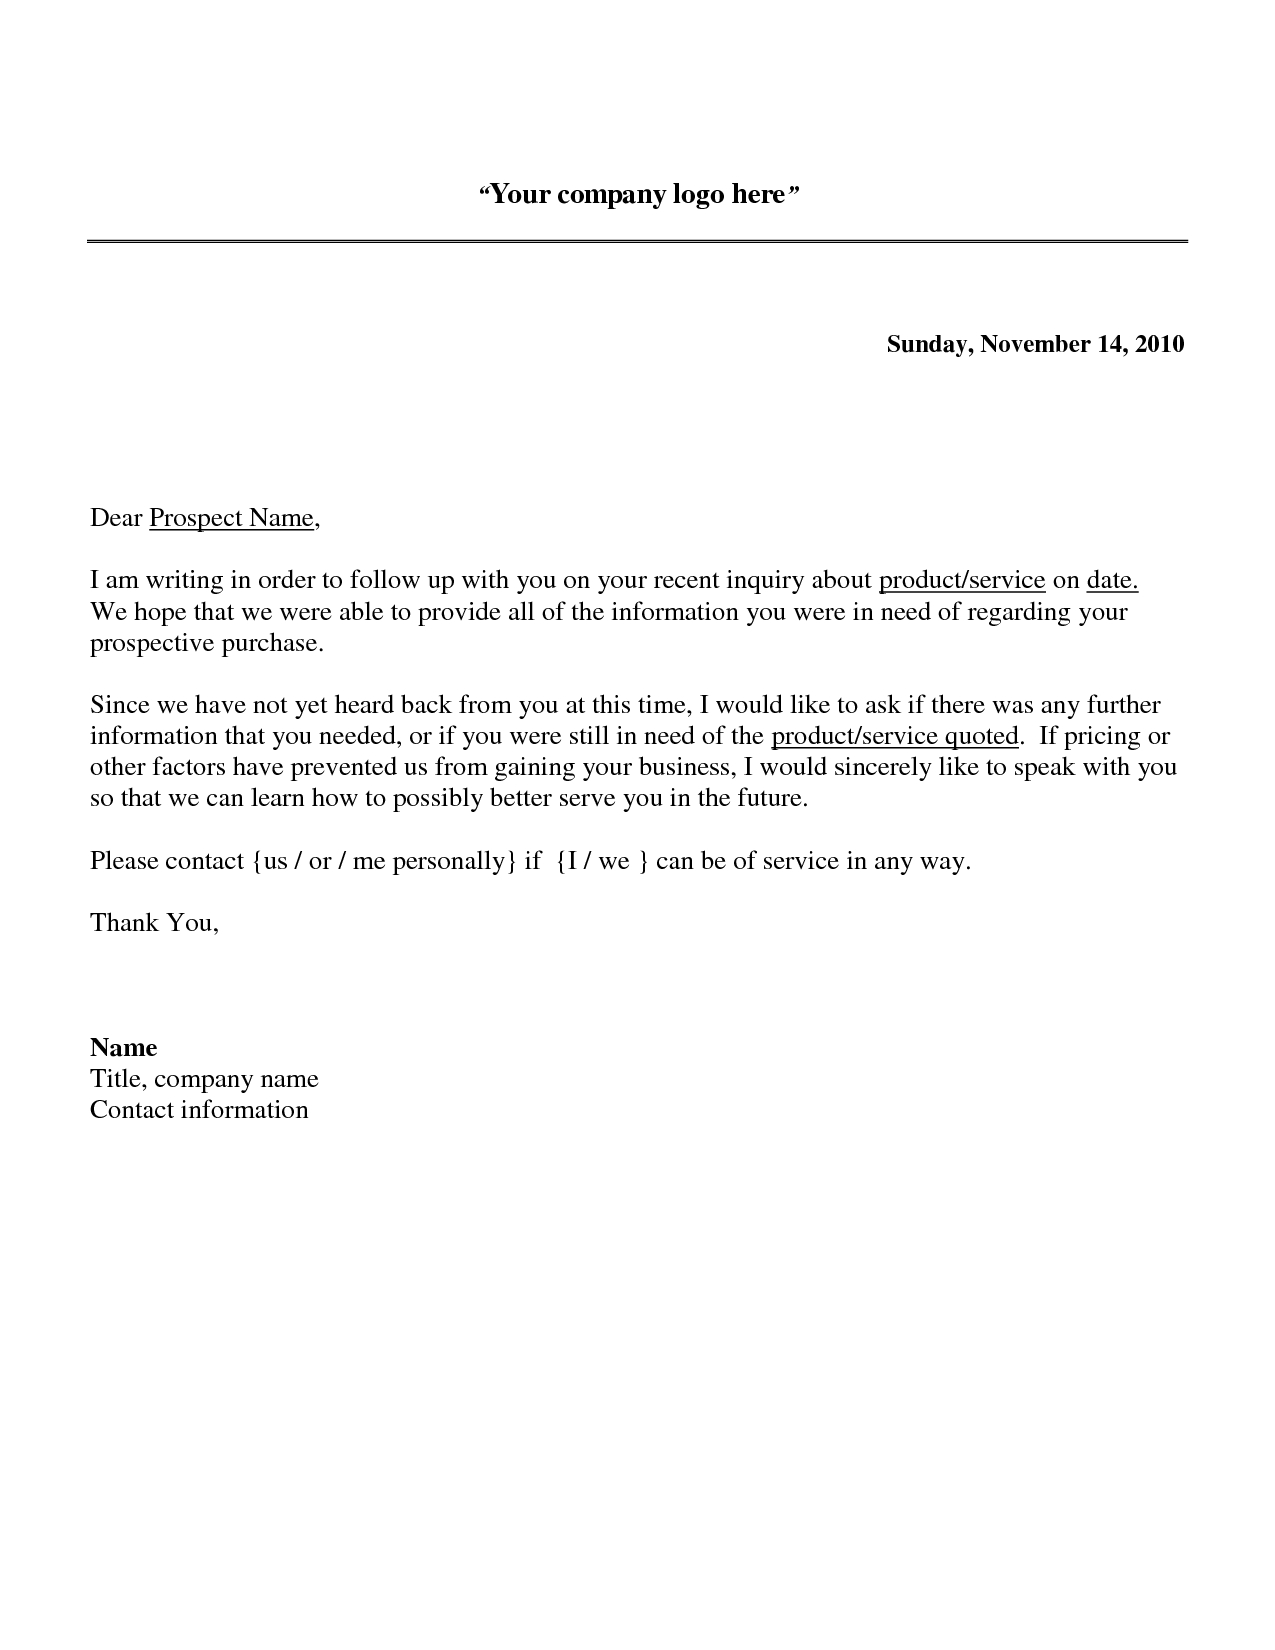 Case Manager Cover Letter Template - Case Manager Cover Letter Examples Restaurant Manager Cover Letter